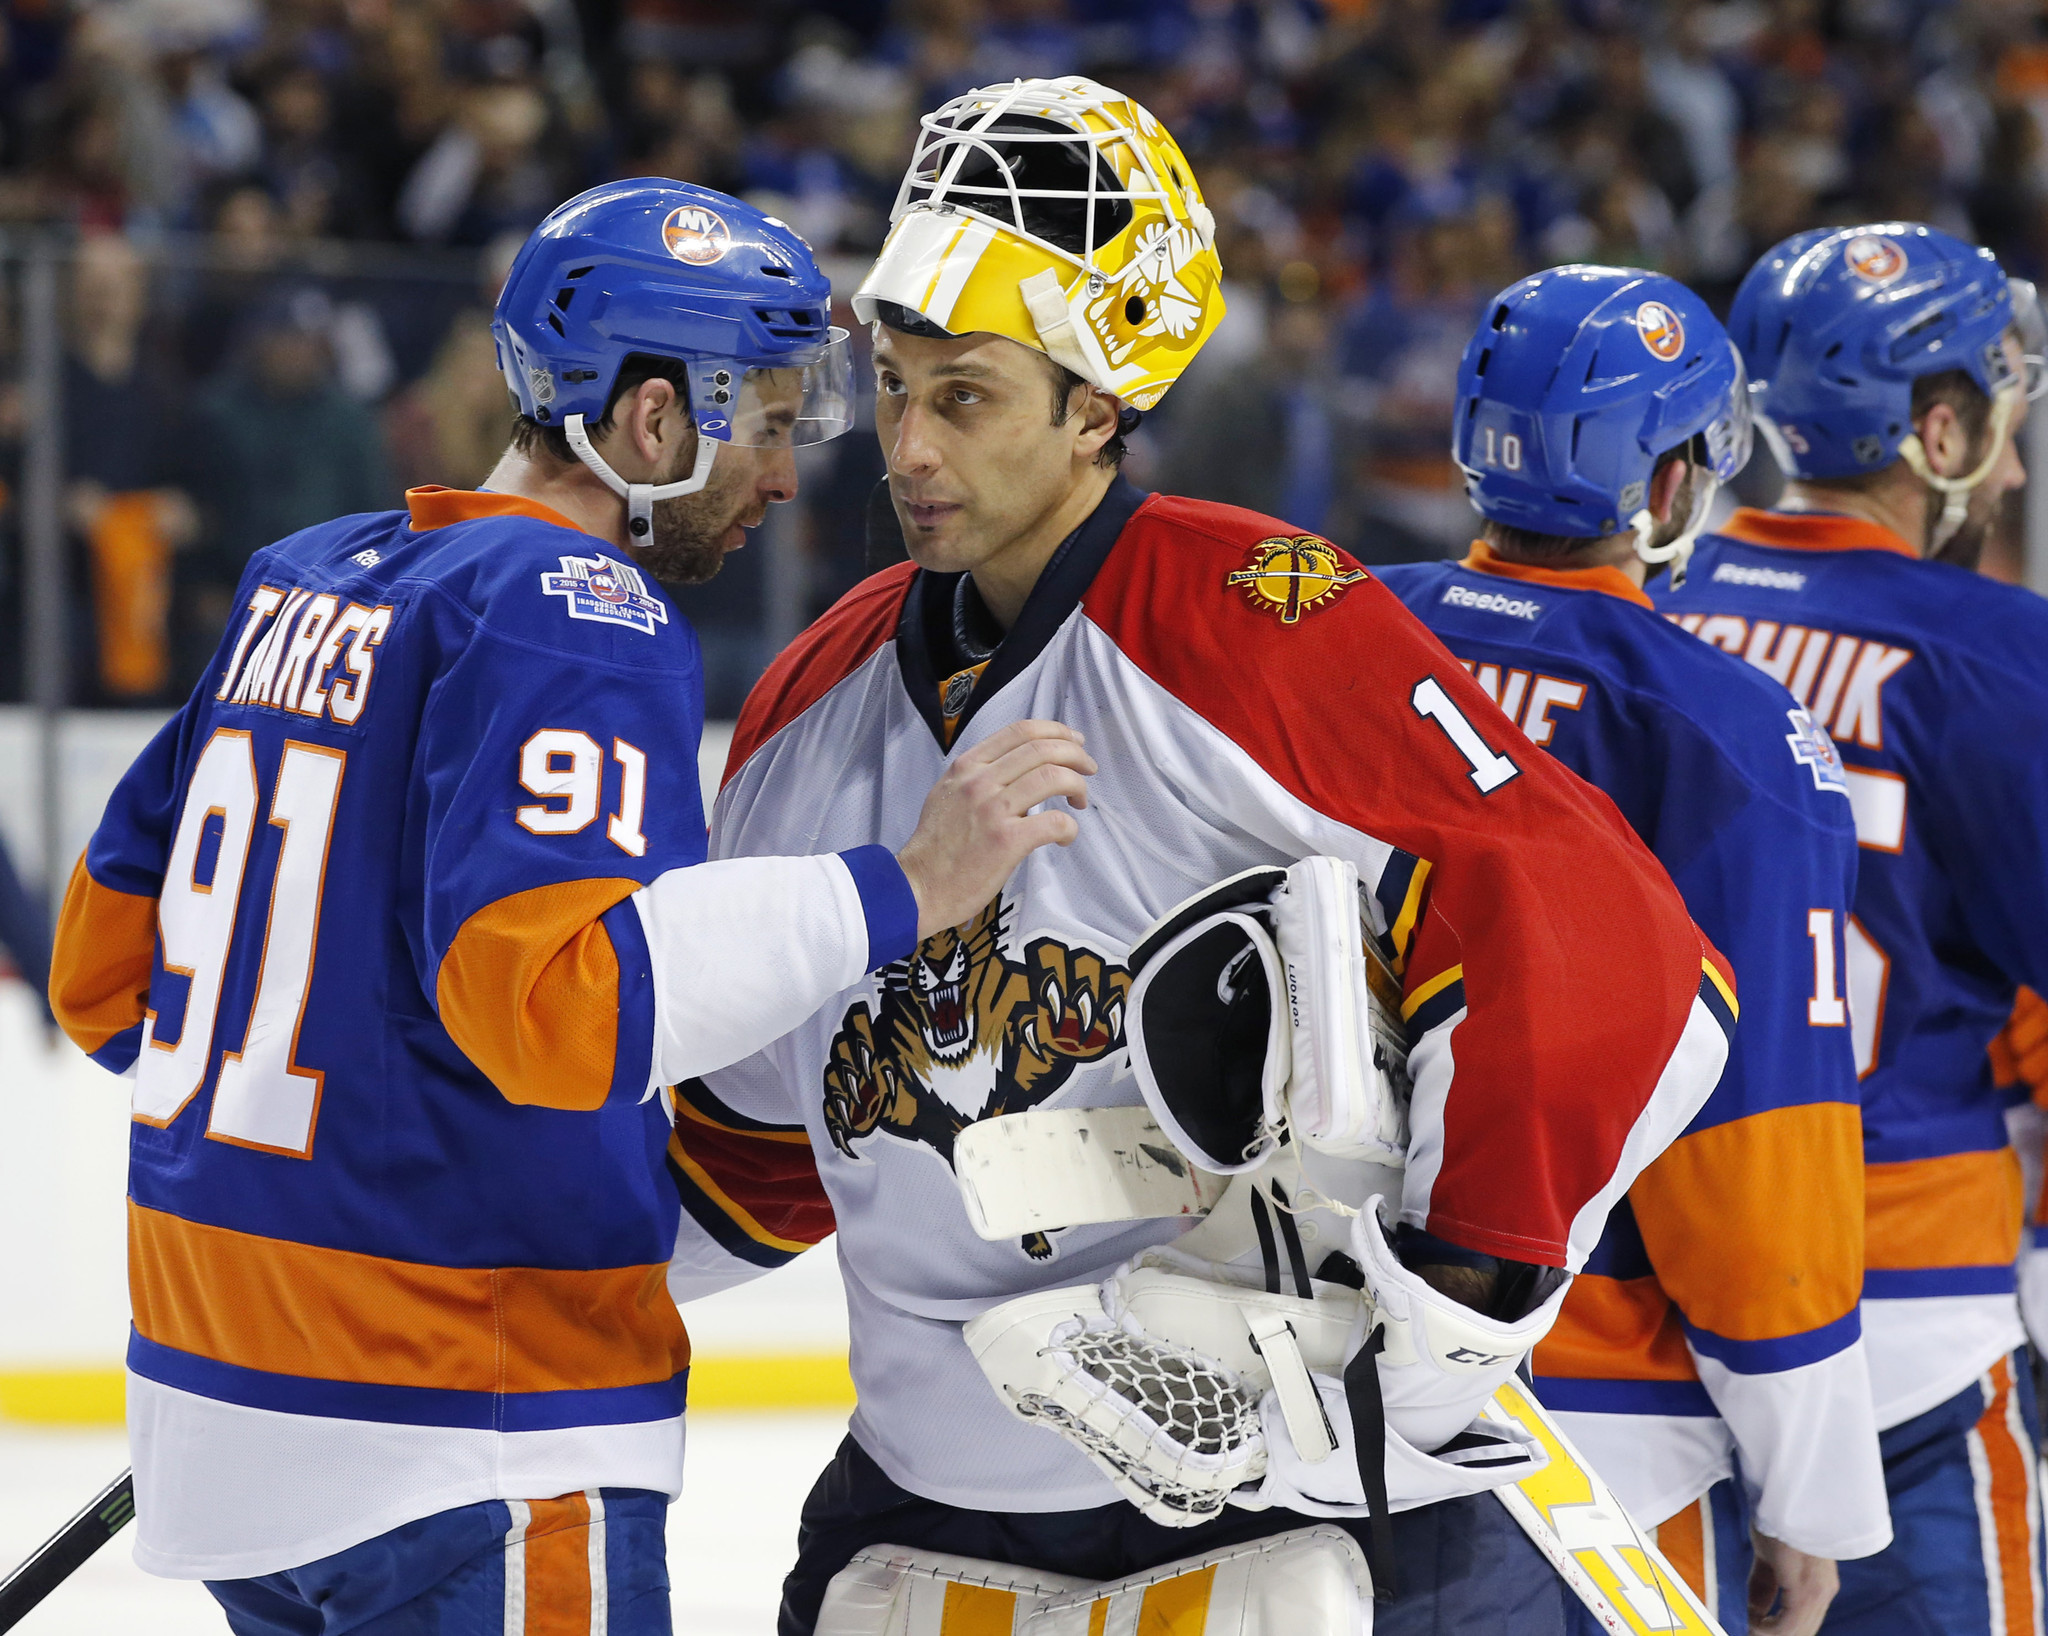 Sfl-panthers-s-luongo-proud-of-season-panthers-had-disappointed-by-the-ending-20160424